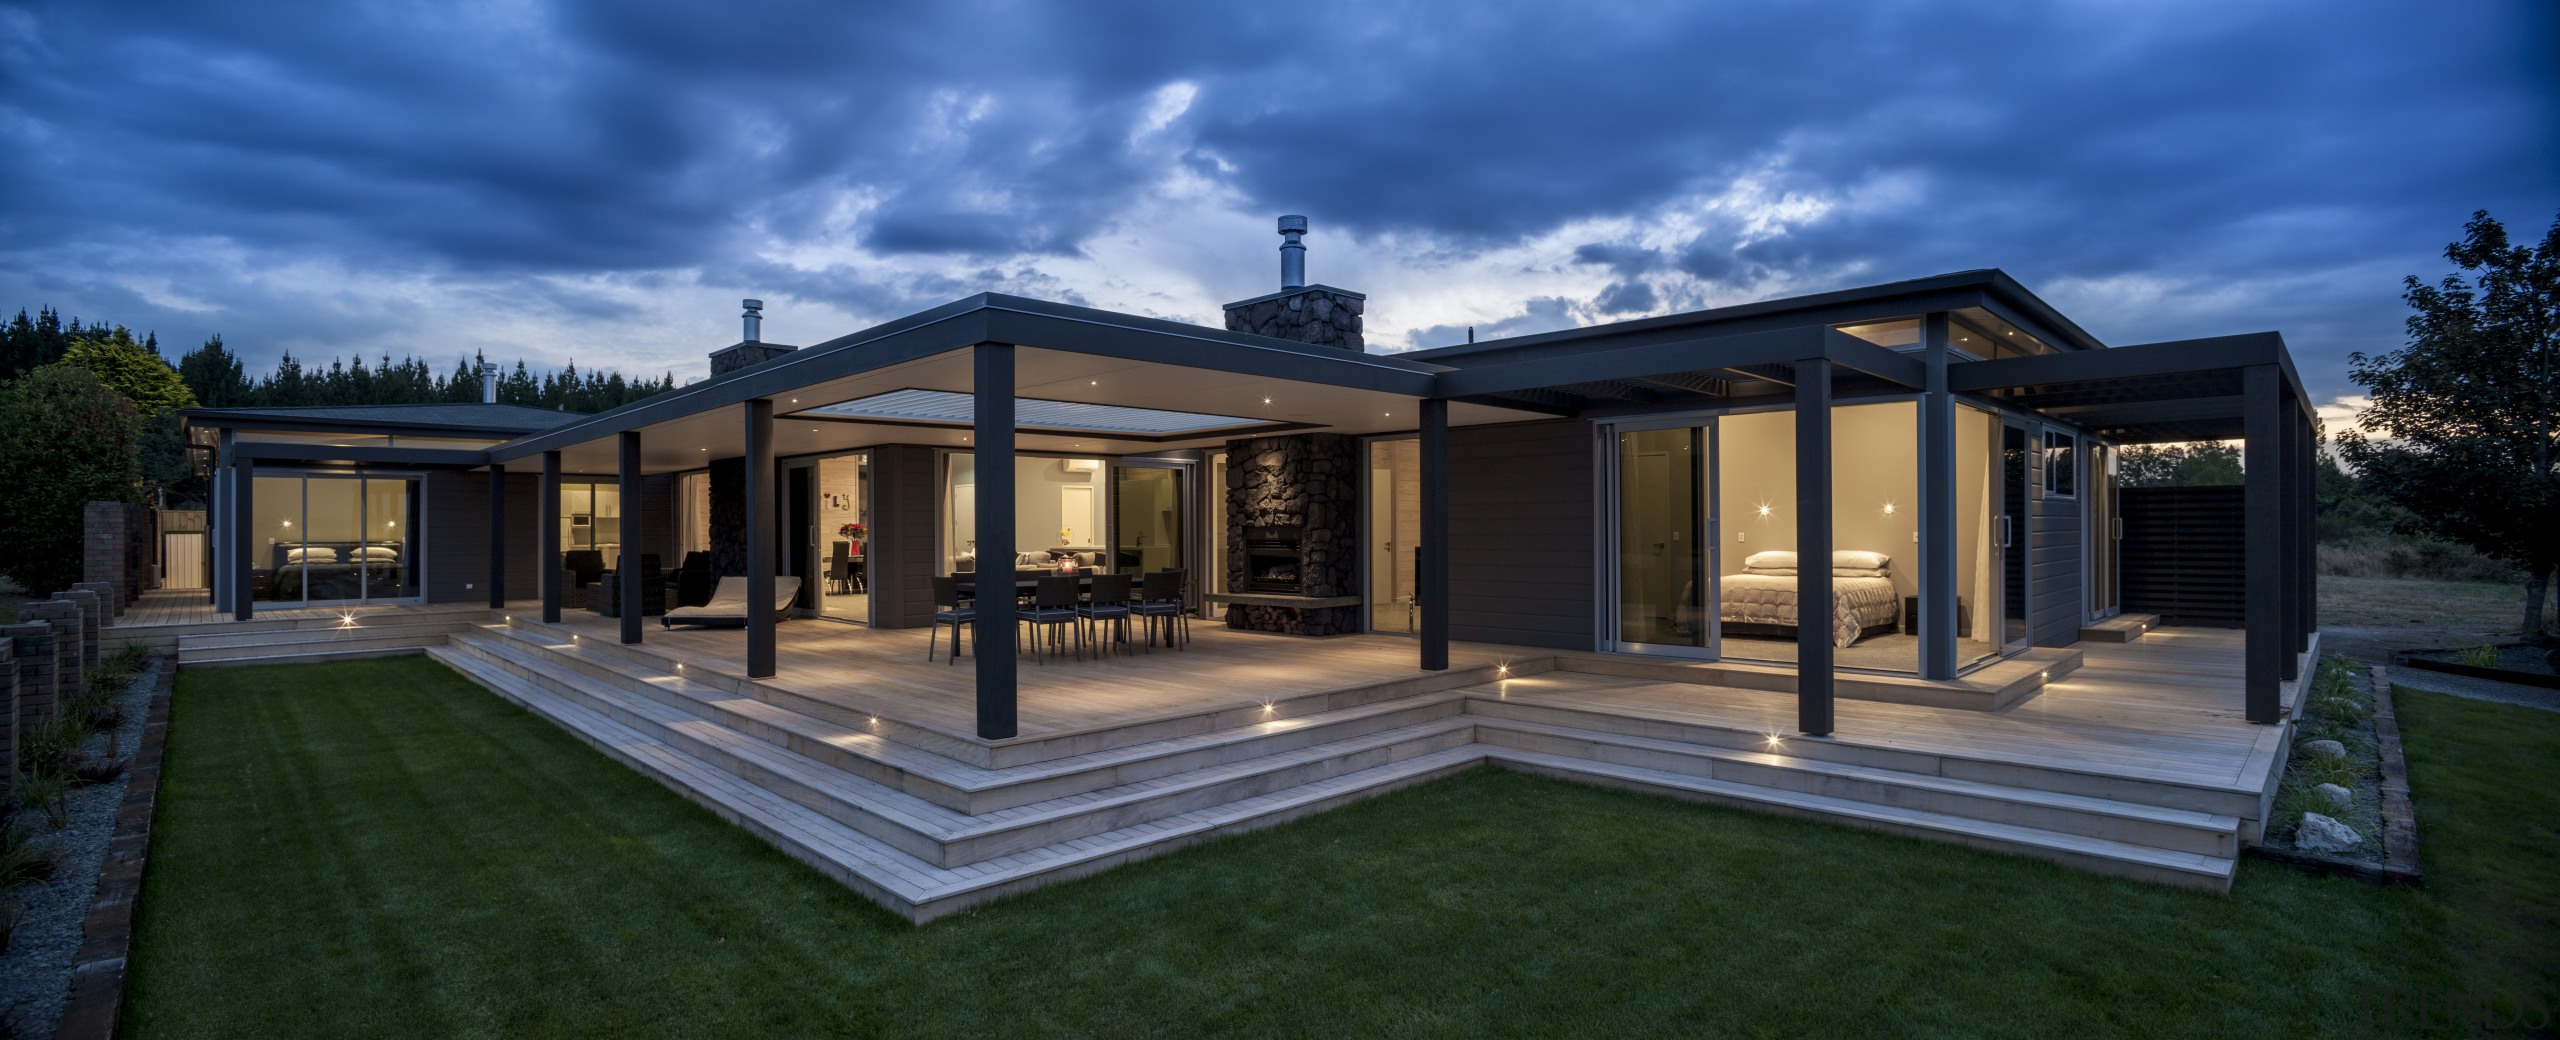 Lockwood Home built by Peter Richards - Lockwood architecture, backyard, estate, facade, home, house, lighting, mansion, orangery, property, real estate, residential area, roof, sky, villa, window, blue